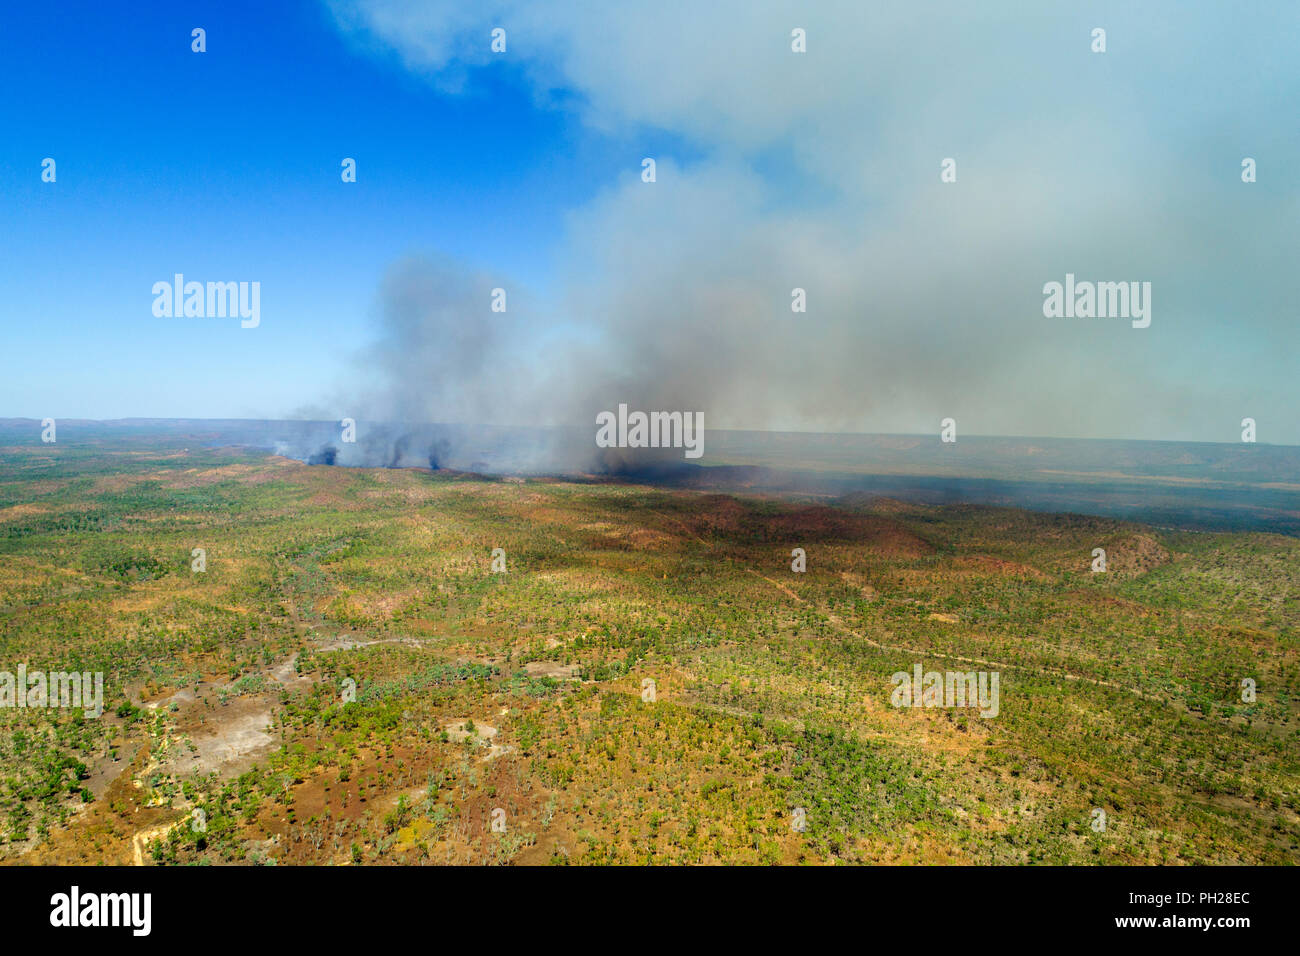 Aerial view of bush fire in Australian outback, Northern Territory, Australia - Stock Image